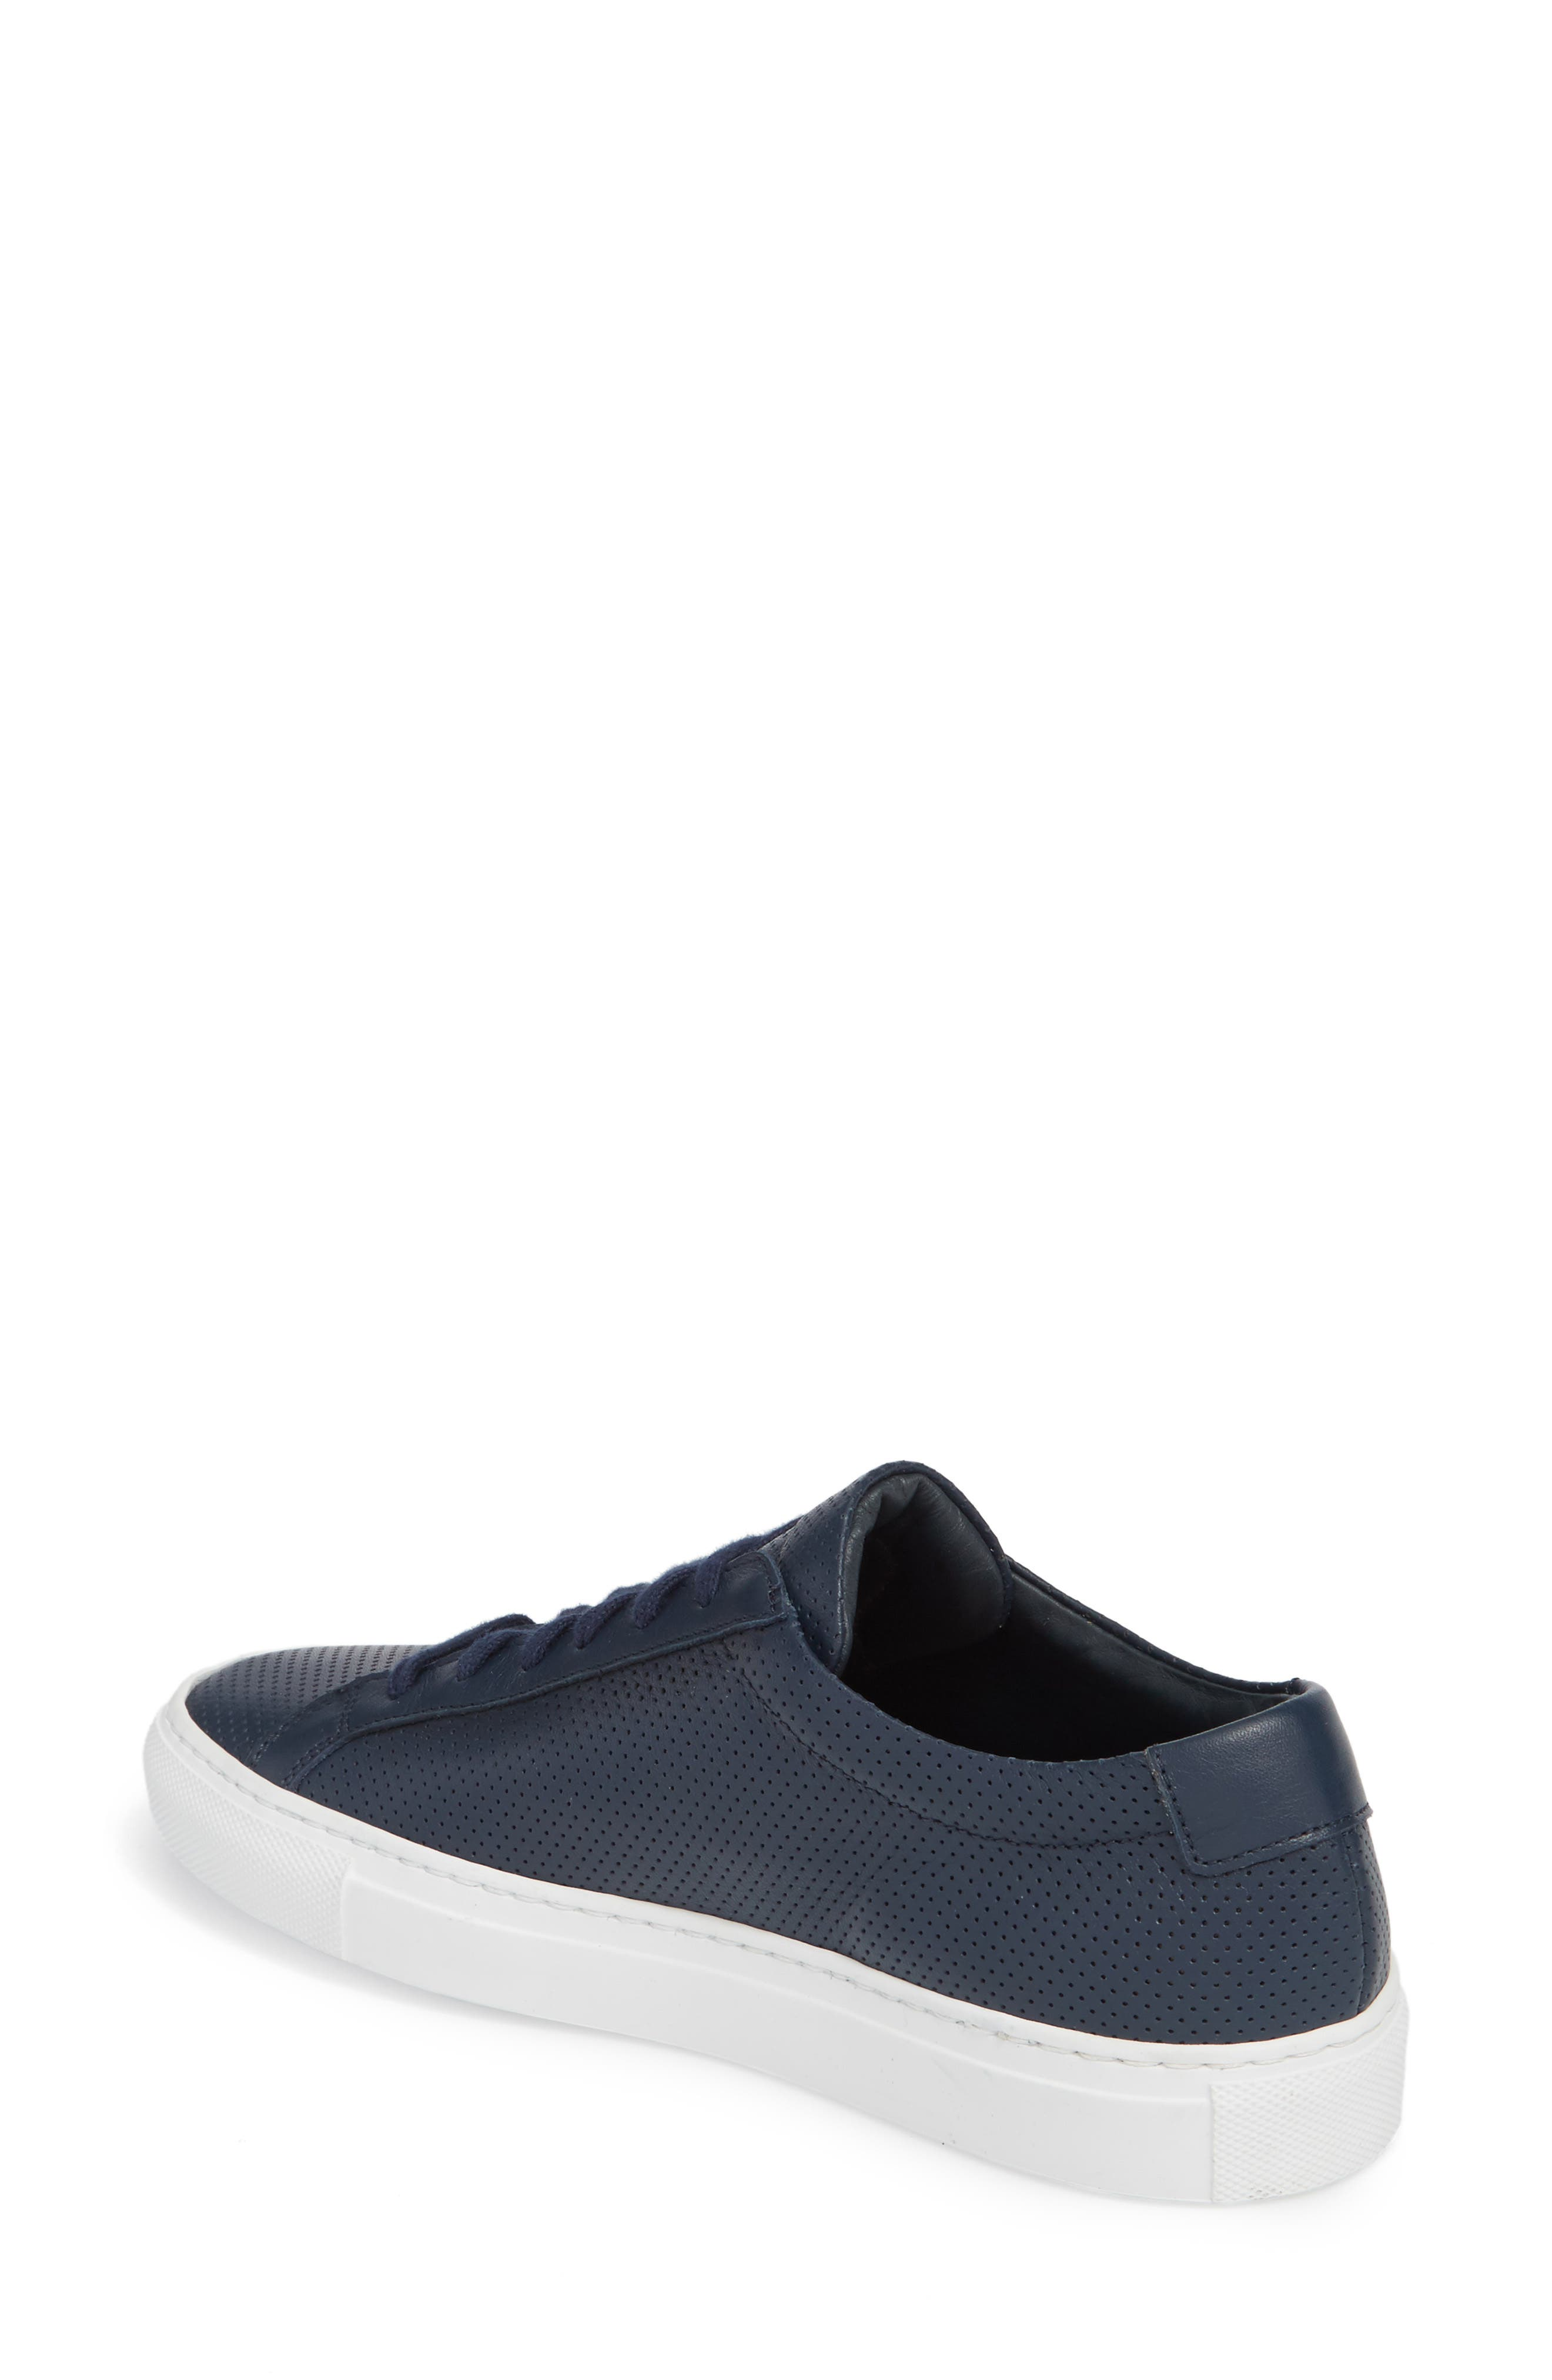 Original Achilles Perforated Low Sneaker,                             Alternate thumbnail 2, color,                             Navy